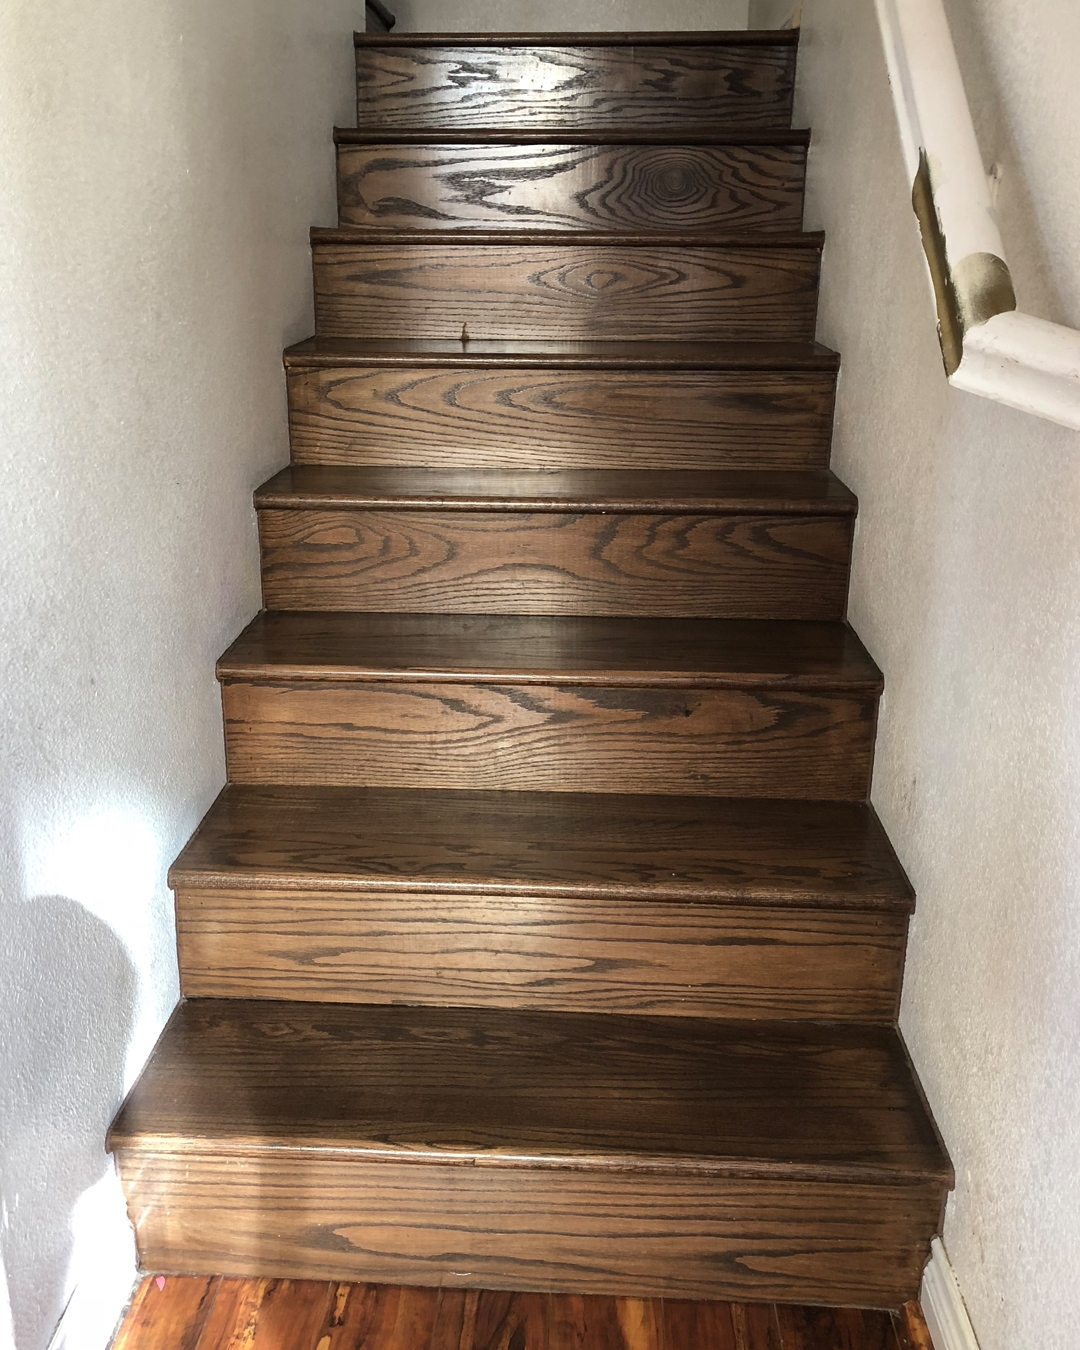 How To Paint Wood Stairs With Chalk Paint — Bb Frösch   White Stairs With Wood Steps   Light Wood   White Riser   Outdoor   Dark   Traditional